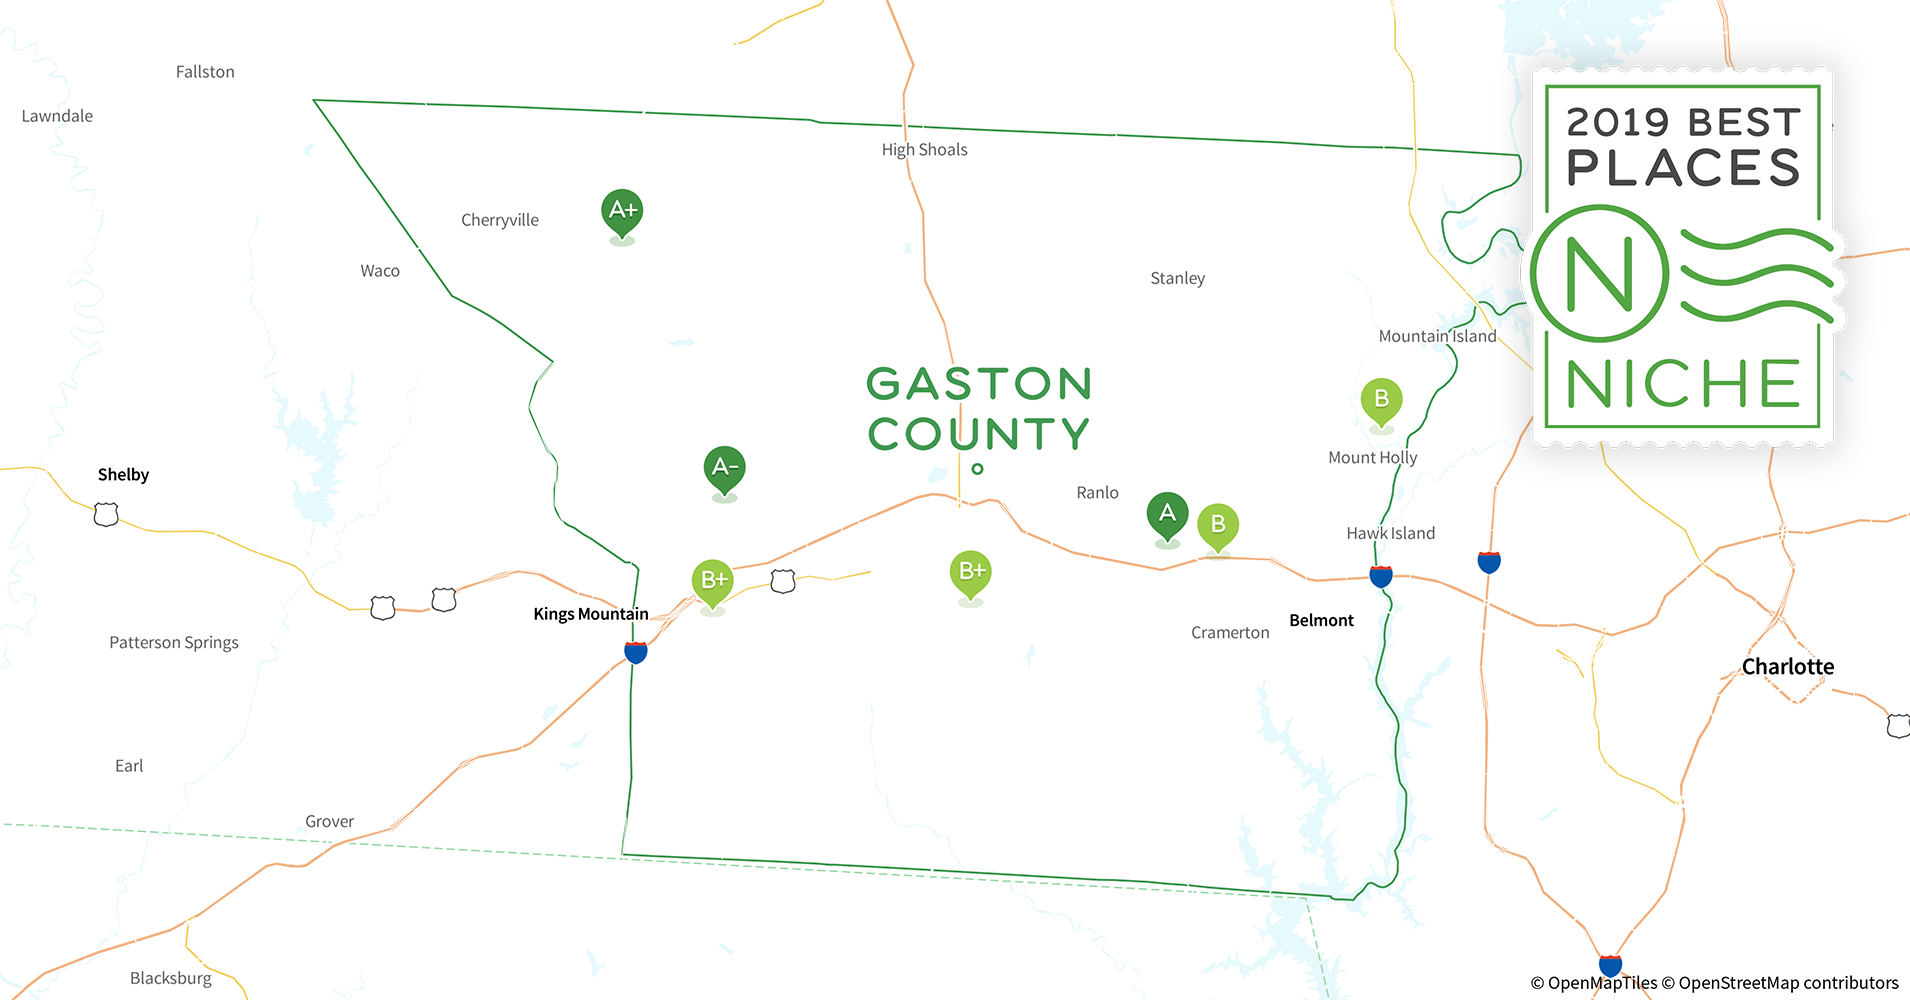 2019 Best Places to Live in Gaston County, NC - Niche Gaston County Nc Map on mecklenburg nc map, gastonia nc map, ranlo nc map, north carolina nc map, mountain view nc map, albemarle nc map, north carolina river basin map, pickens county sc map, mooresville nc map, yadkin river nc map, mountain island lake nc map, wadesboro nc map, lake gaston map, gastonia north carolina map, hidden valley nc map, united states nc map, charlotte nc city limits map, gastonia city map, belmont north carolina map, southwest charlotte nc map,